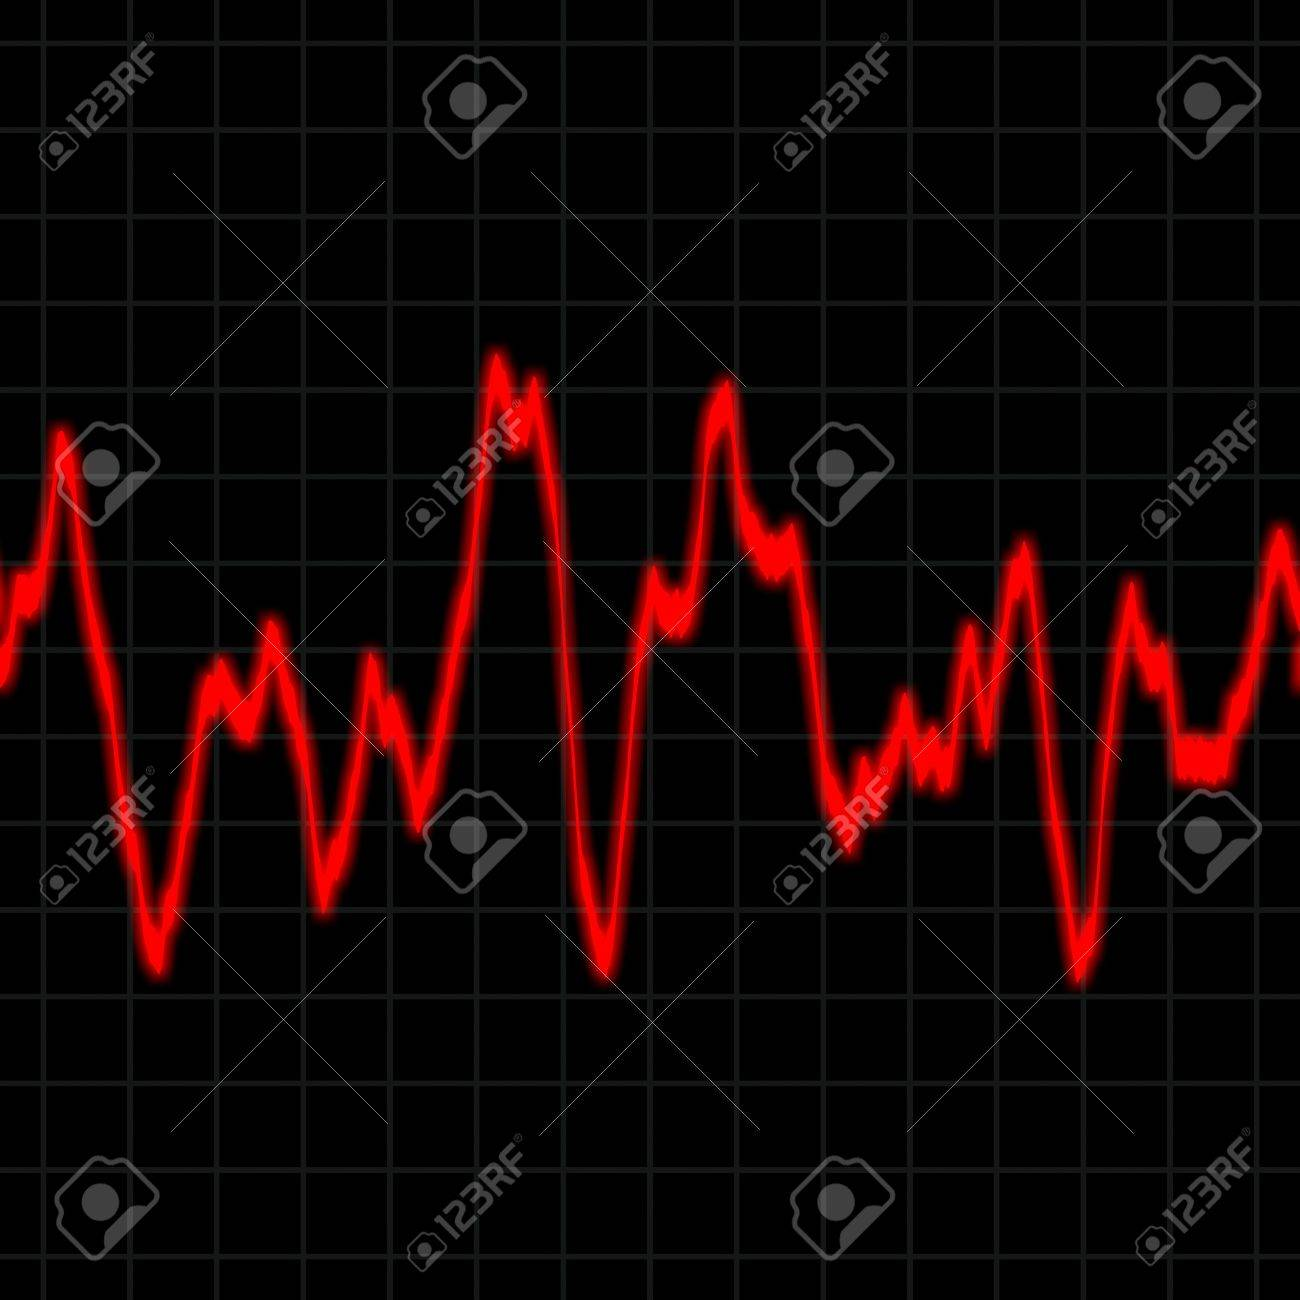 Illustration of the electrical activity of the human heart. Stock Photo - 3786121